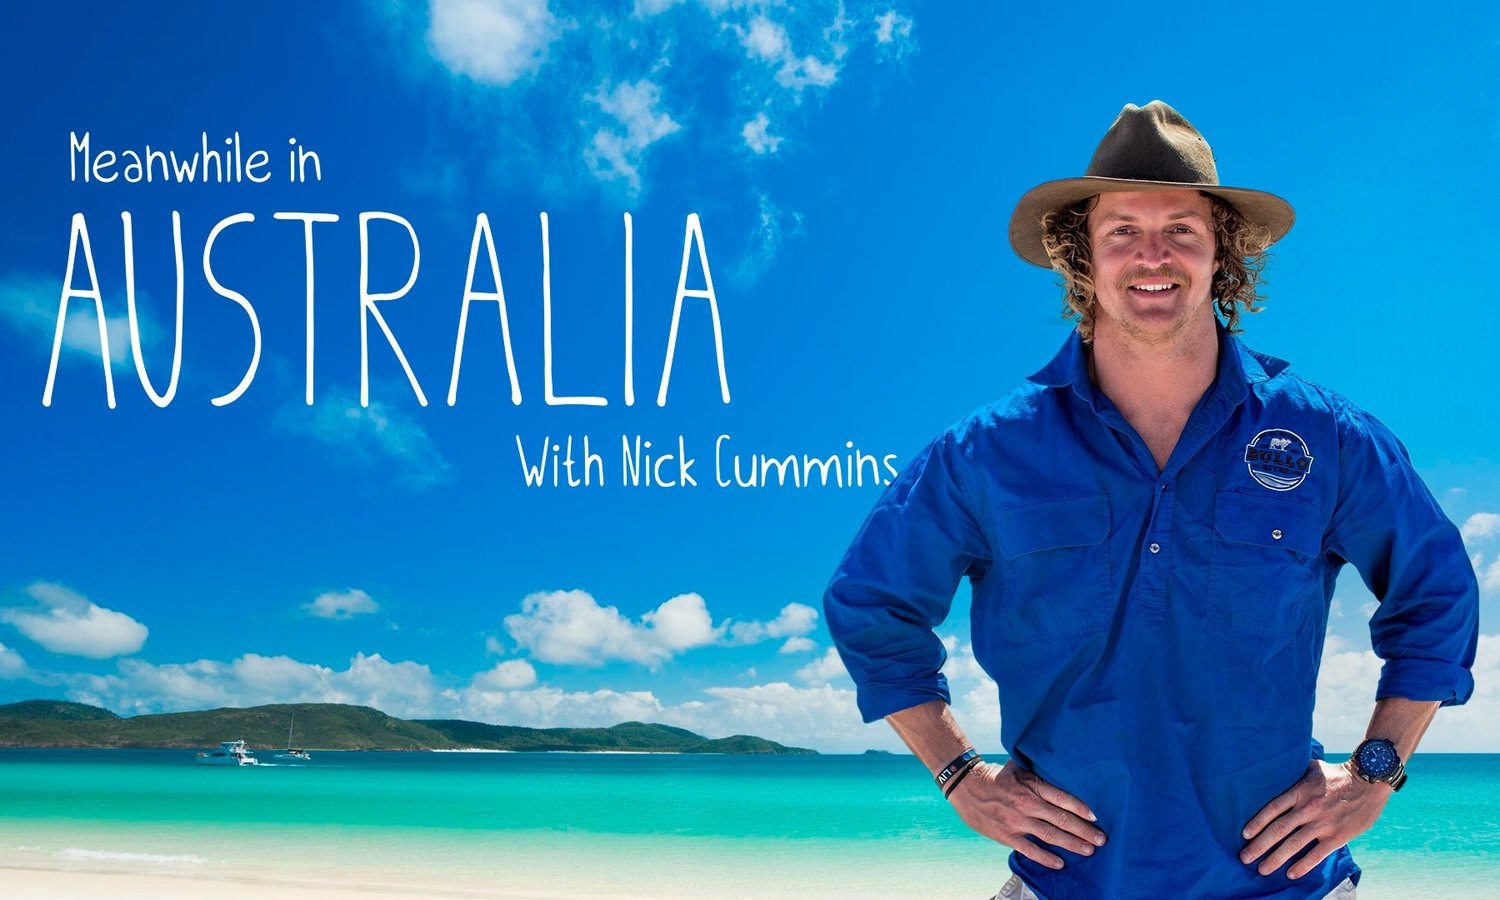 AIRDATE | MEANWHILE IN AUSTRALIA with Nick Cummins